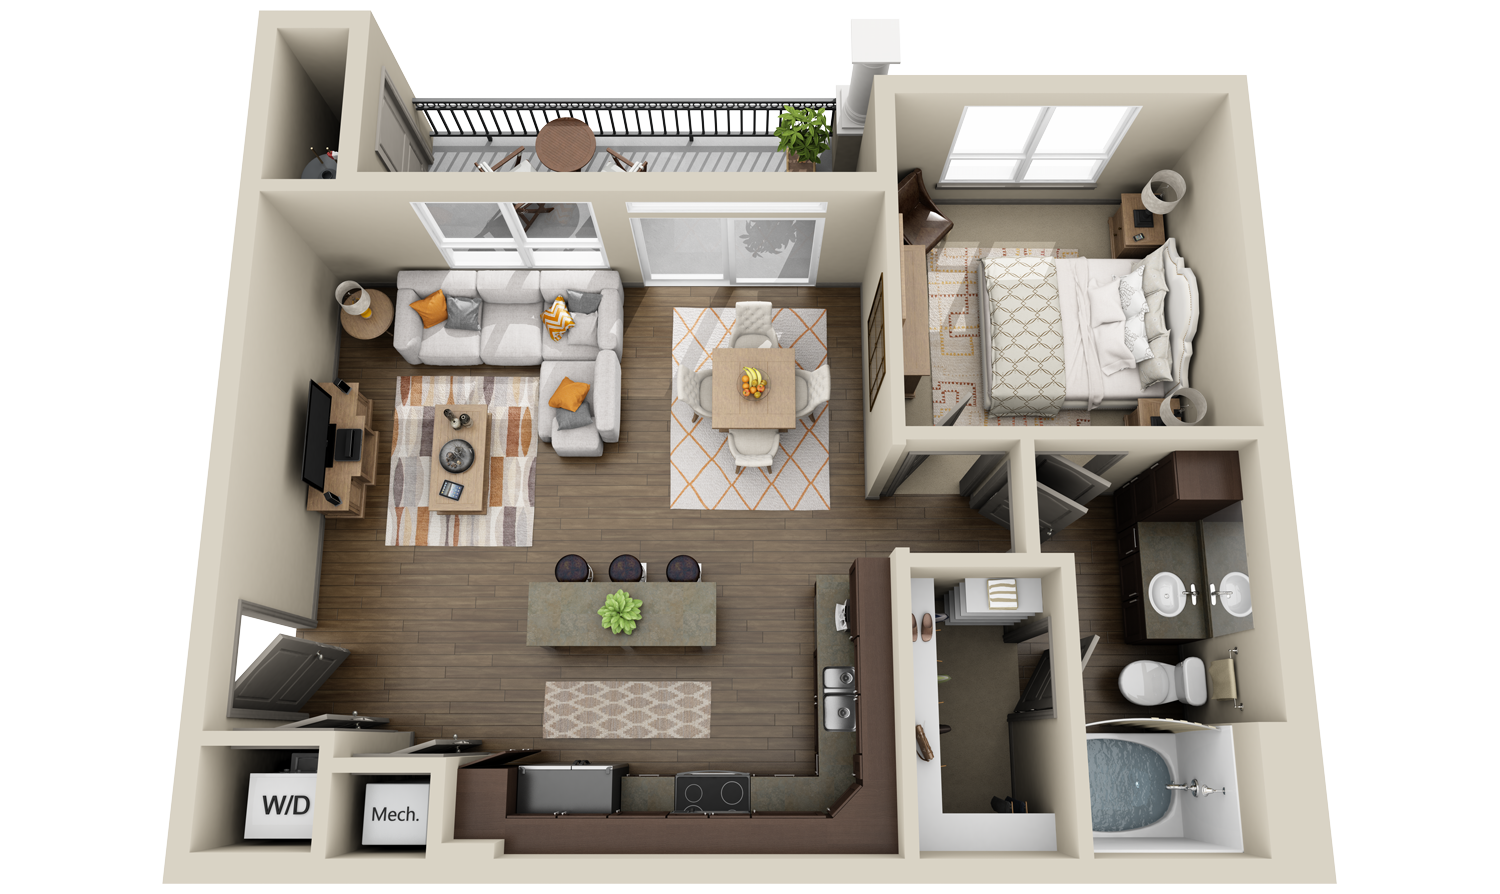 Http 3dplans Com Wp Content Uploads 2014 11 Stoneleigh Cos Waterford Springs A3 New Construction1 Apartment Floor Plans Floor Plan Design Modern Floor Plans